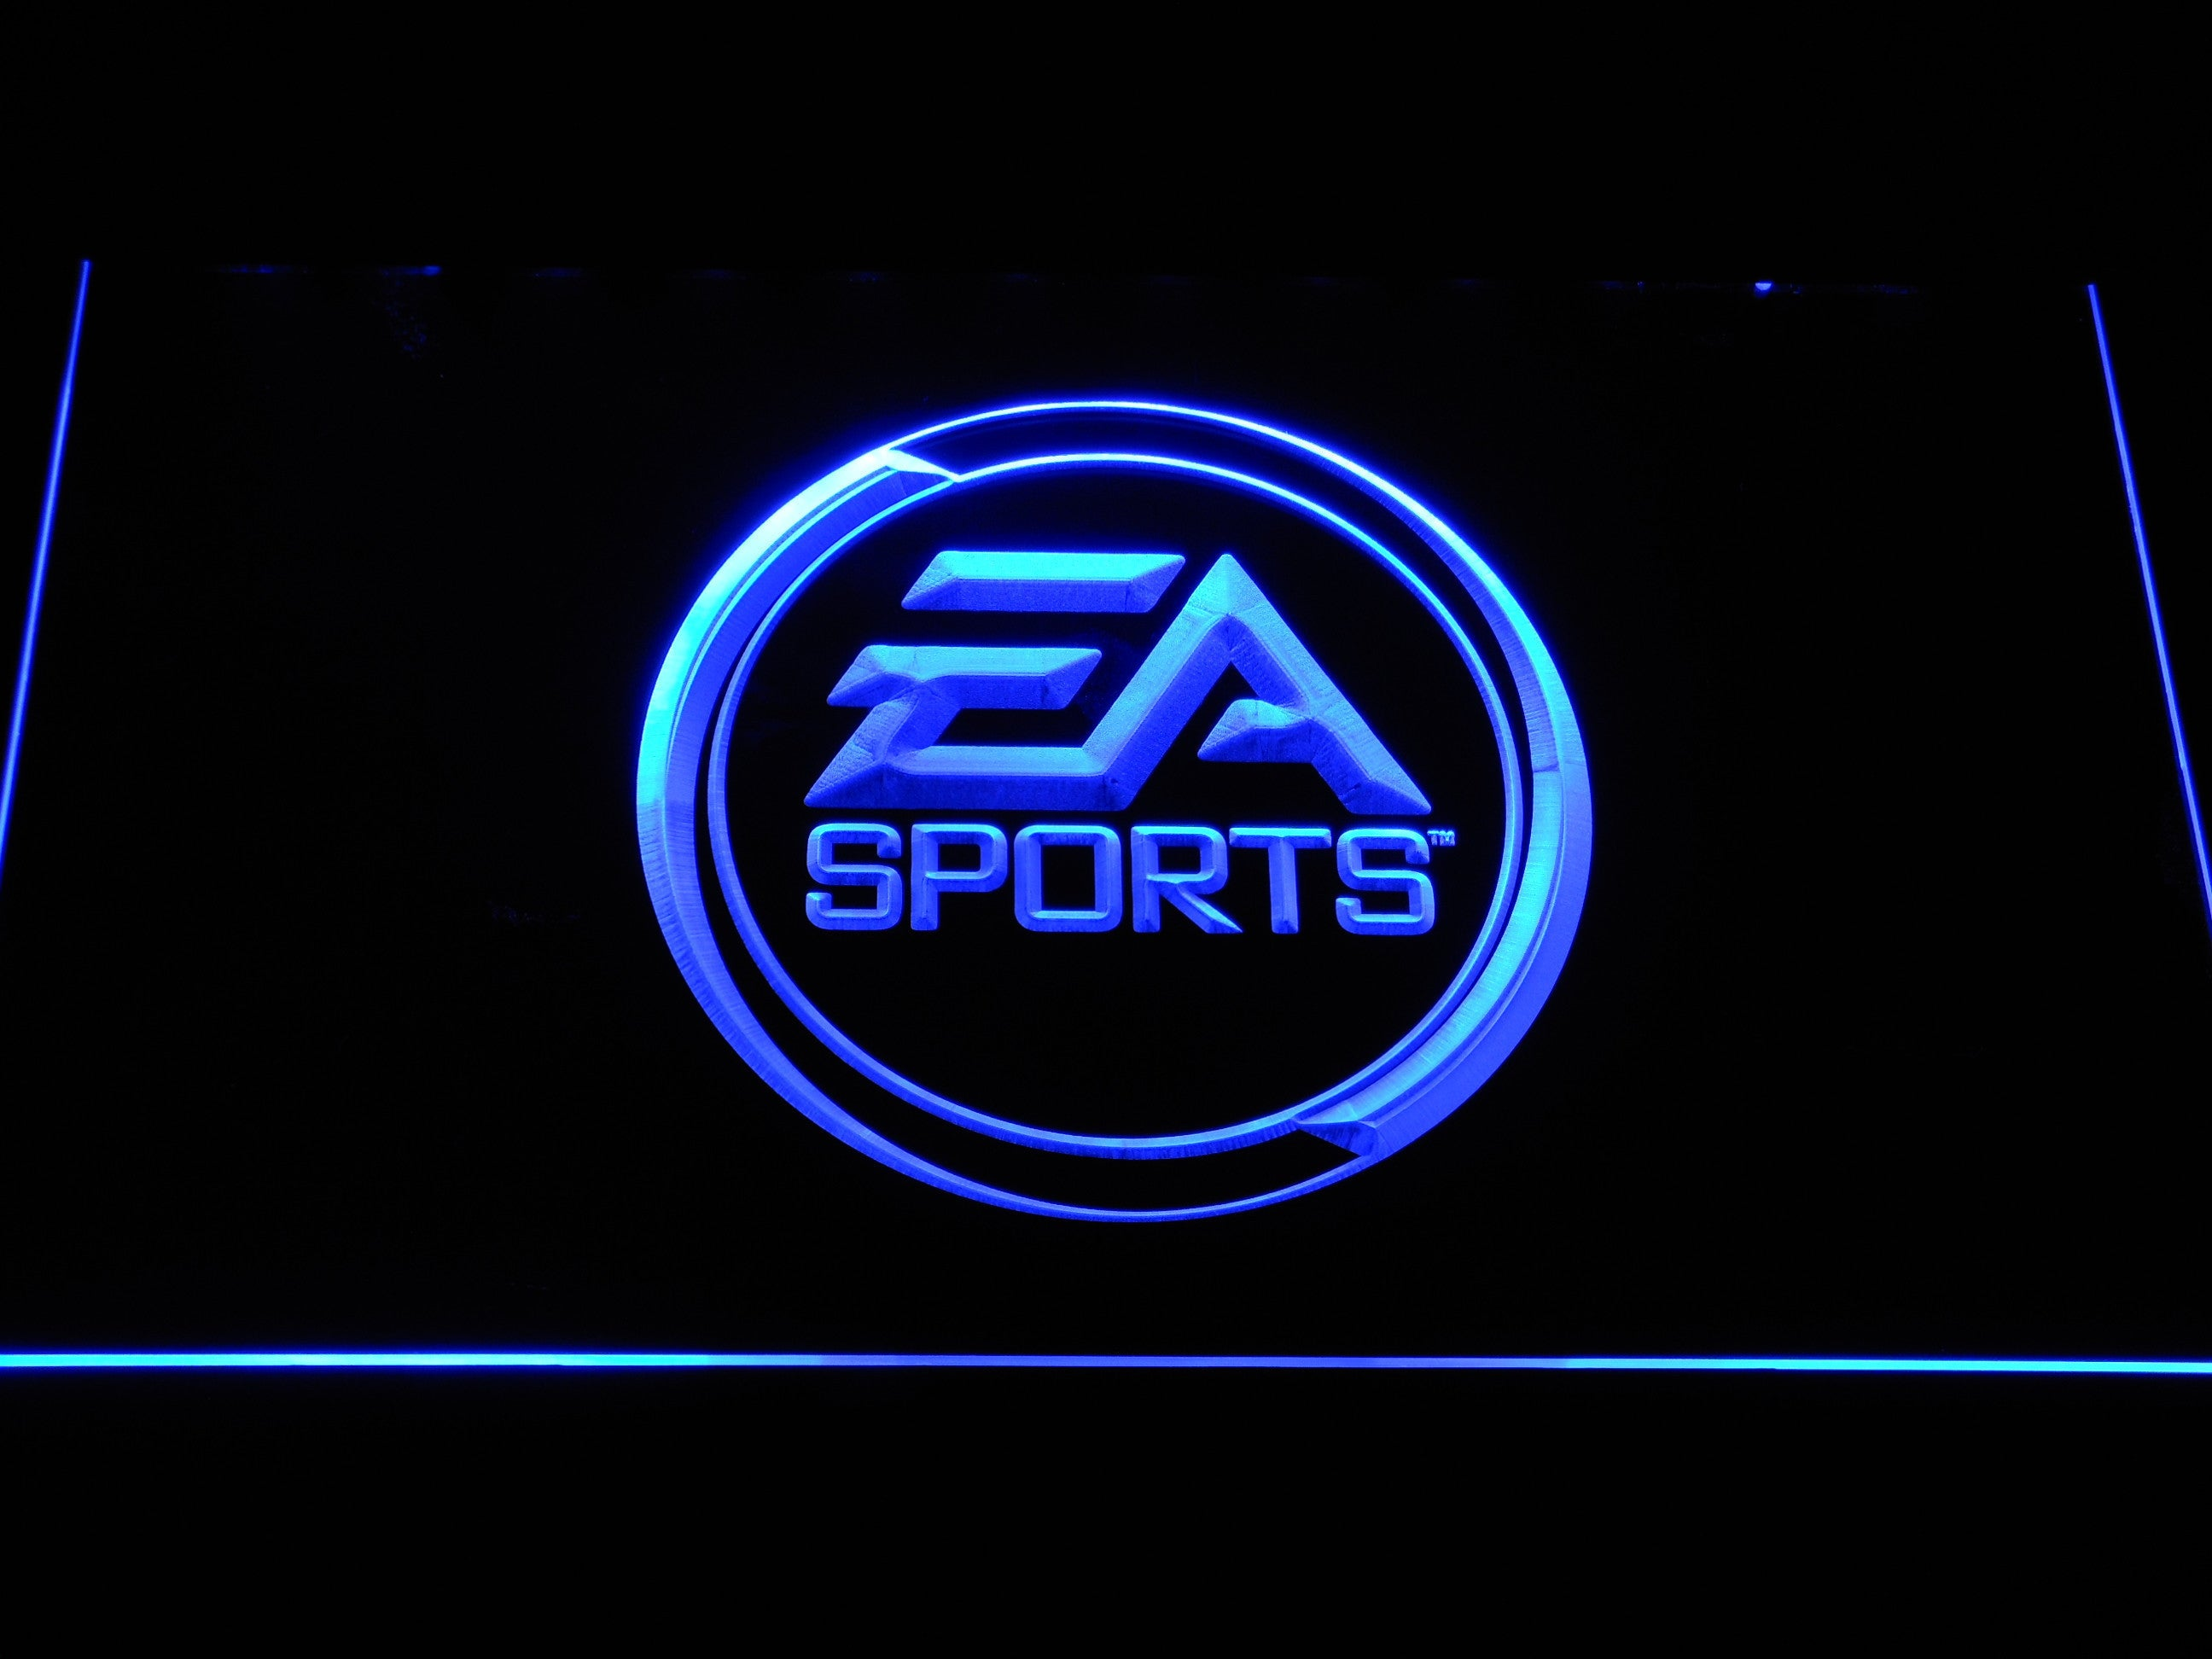 neon sign sports ea led signs safespecial games